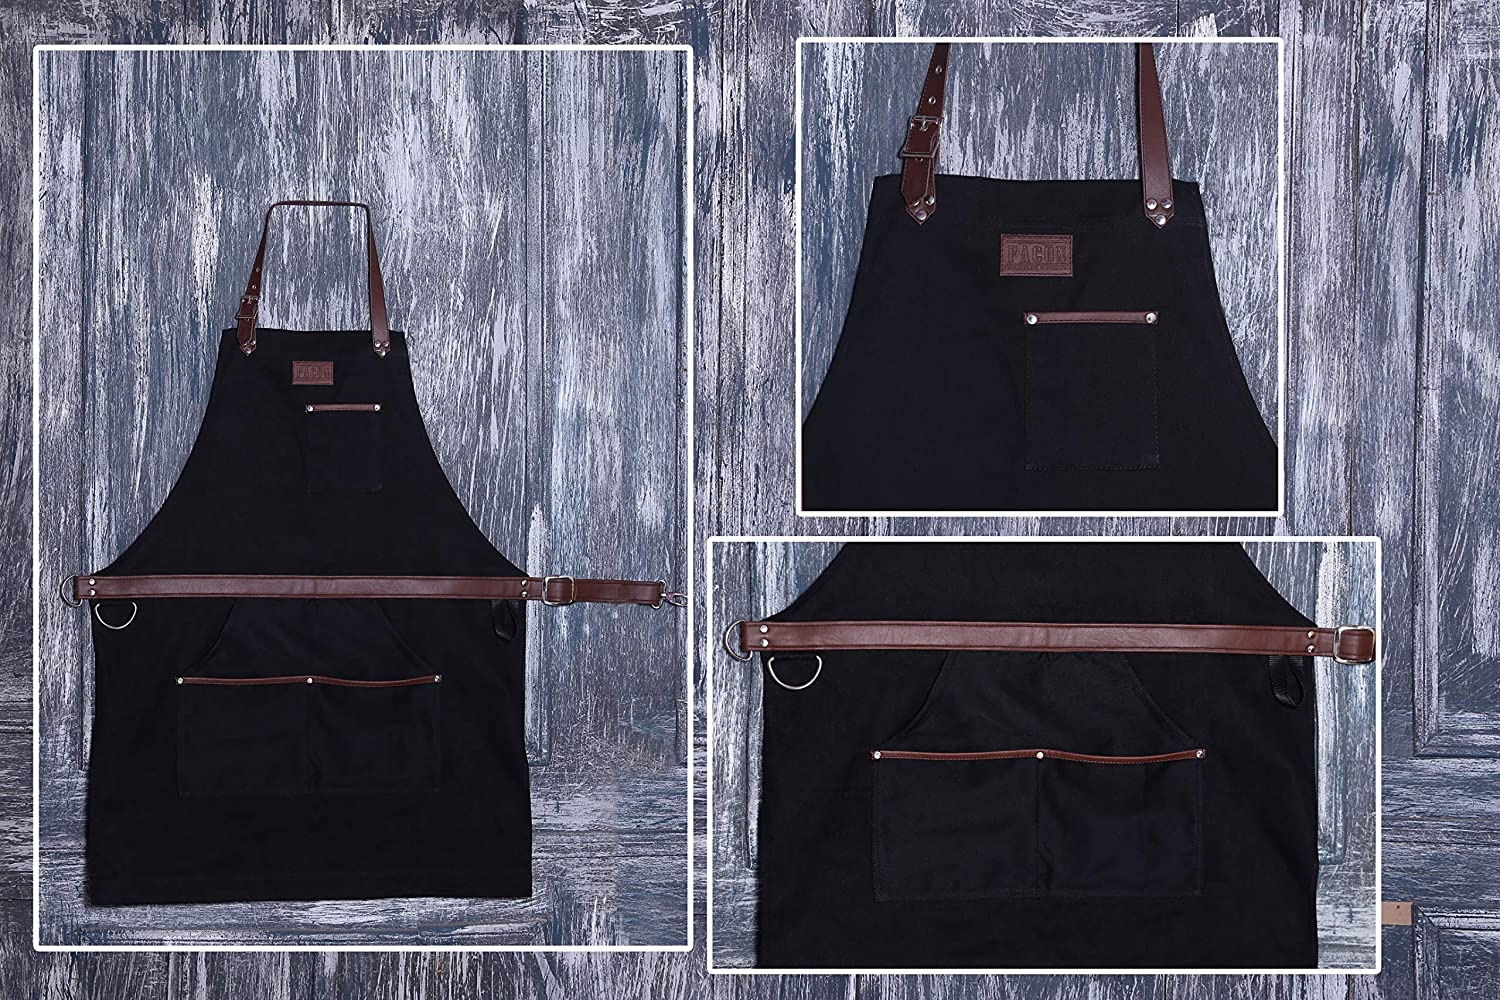 Adjustable with 5 Pockets and 2 Loops Premium Quality Soft Waxed Canvas Fac/ón Professional Grade Heavy Duty Work Apron for Tools Multi-use Limited Edition Black 35 x 27